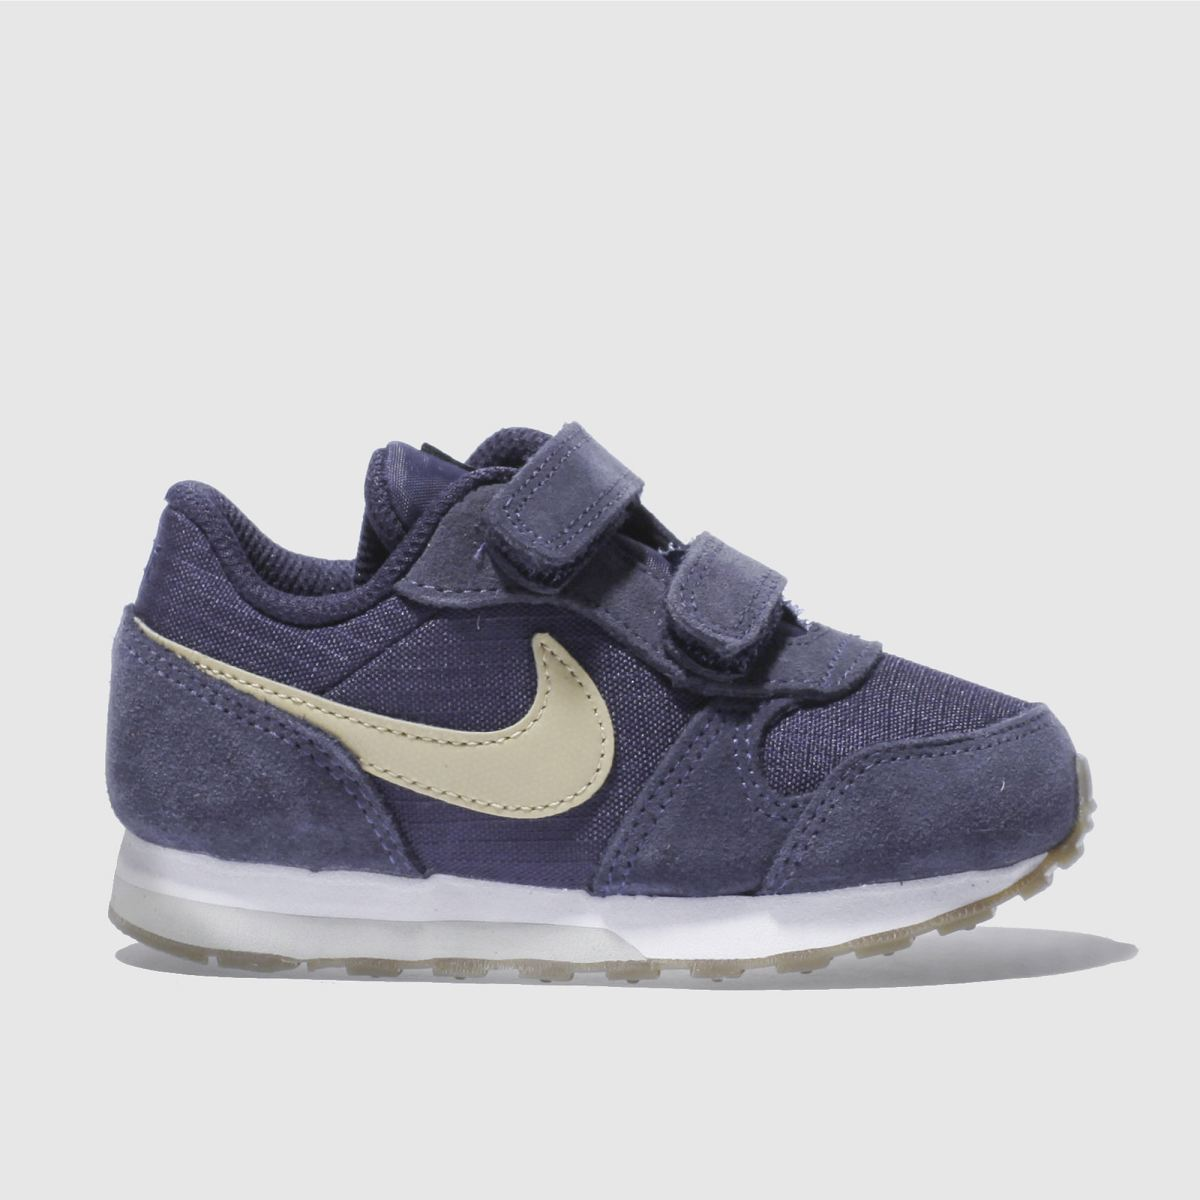 nike navy & stone md runner 2 Boys Toddler Trainers